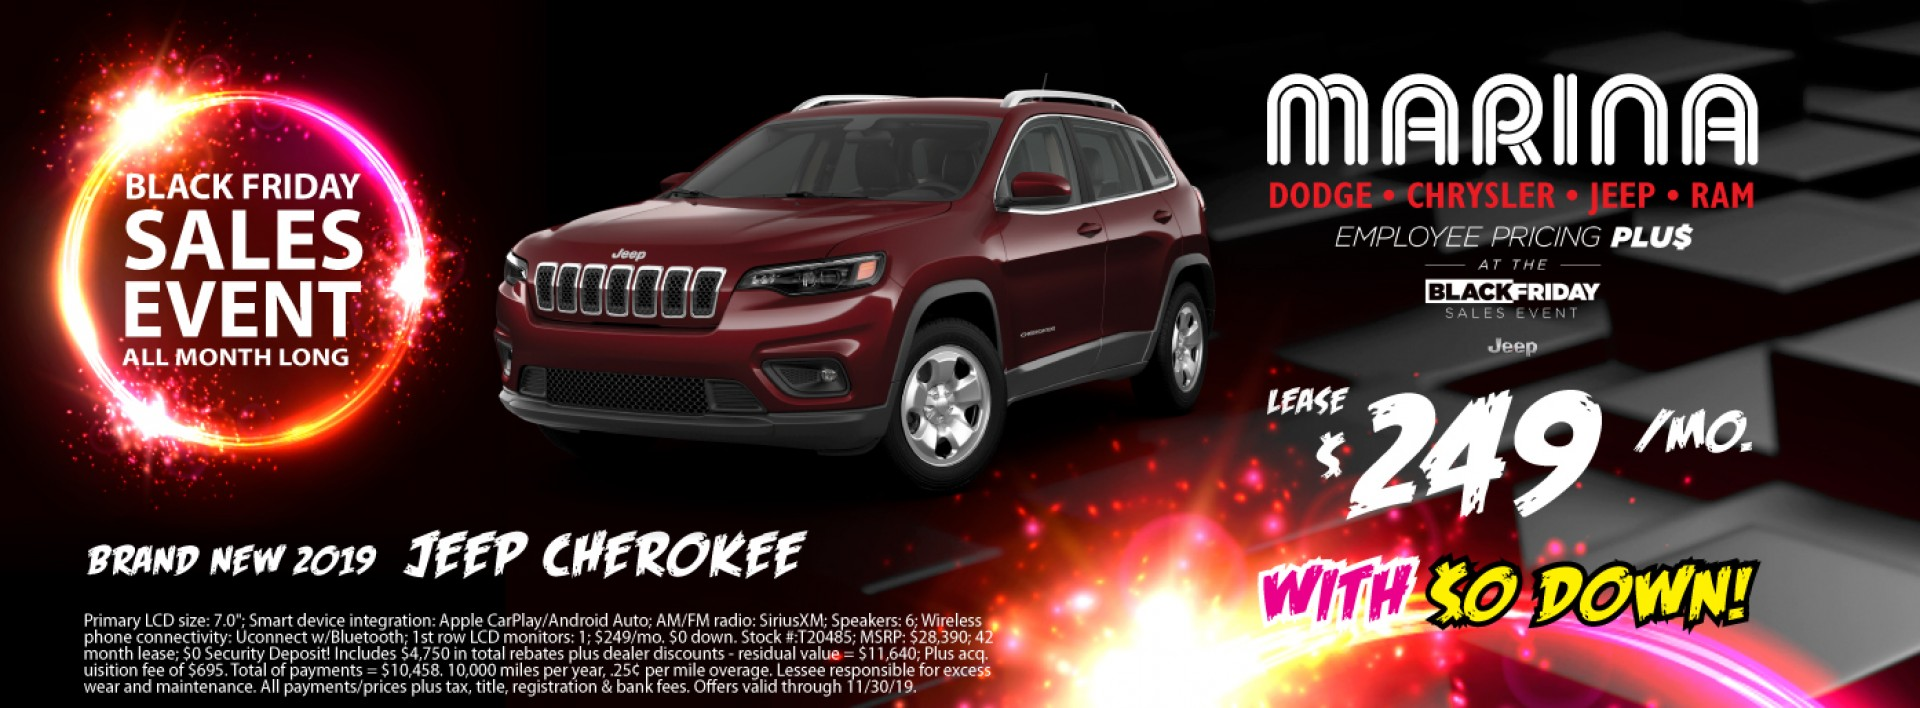 Brand new 2019 Jeep Cherokee lease $249/mo with $0 down!